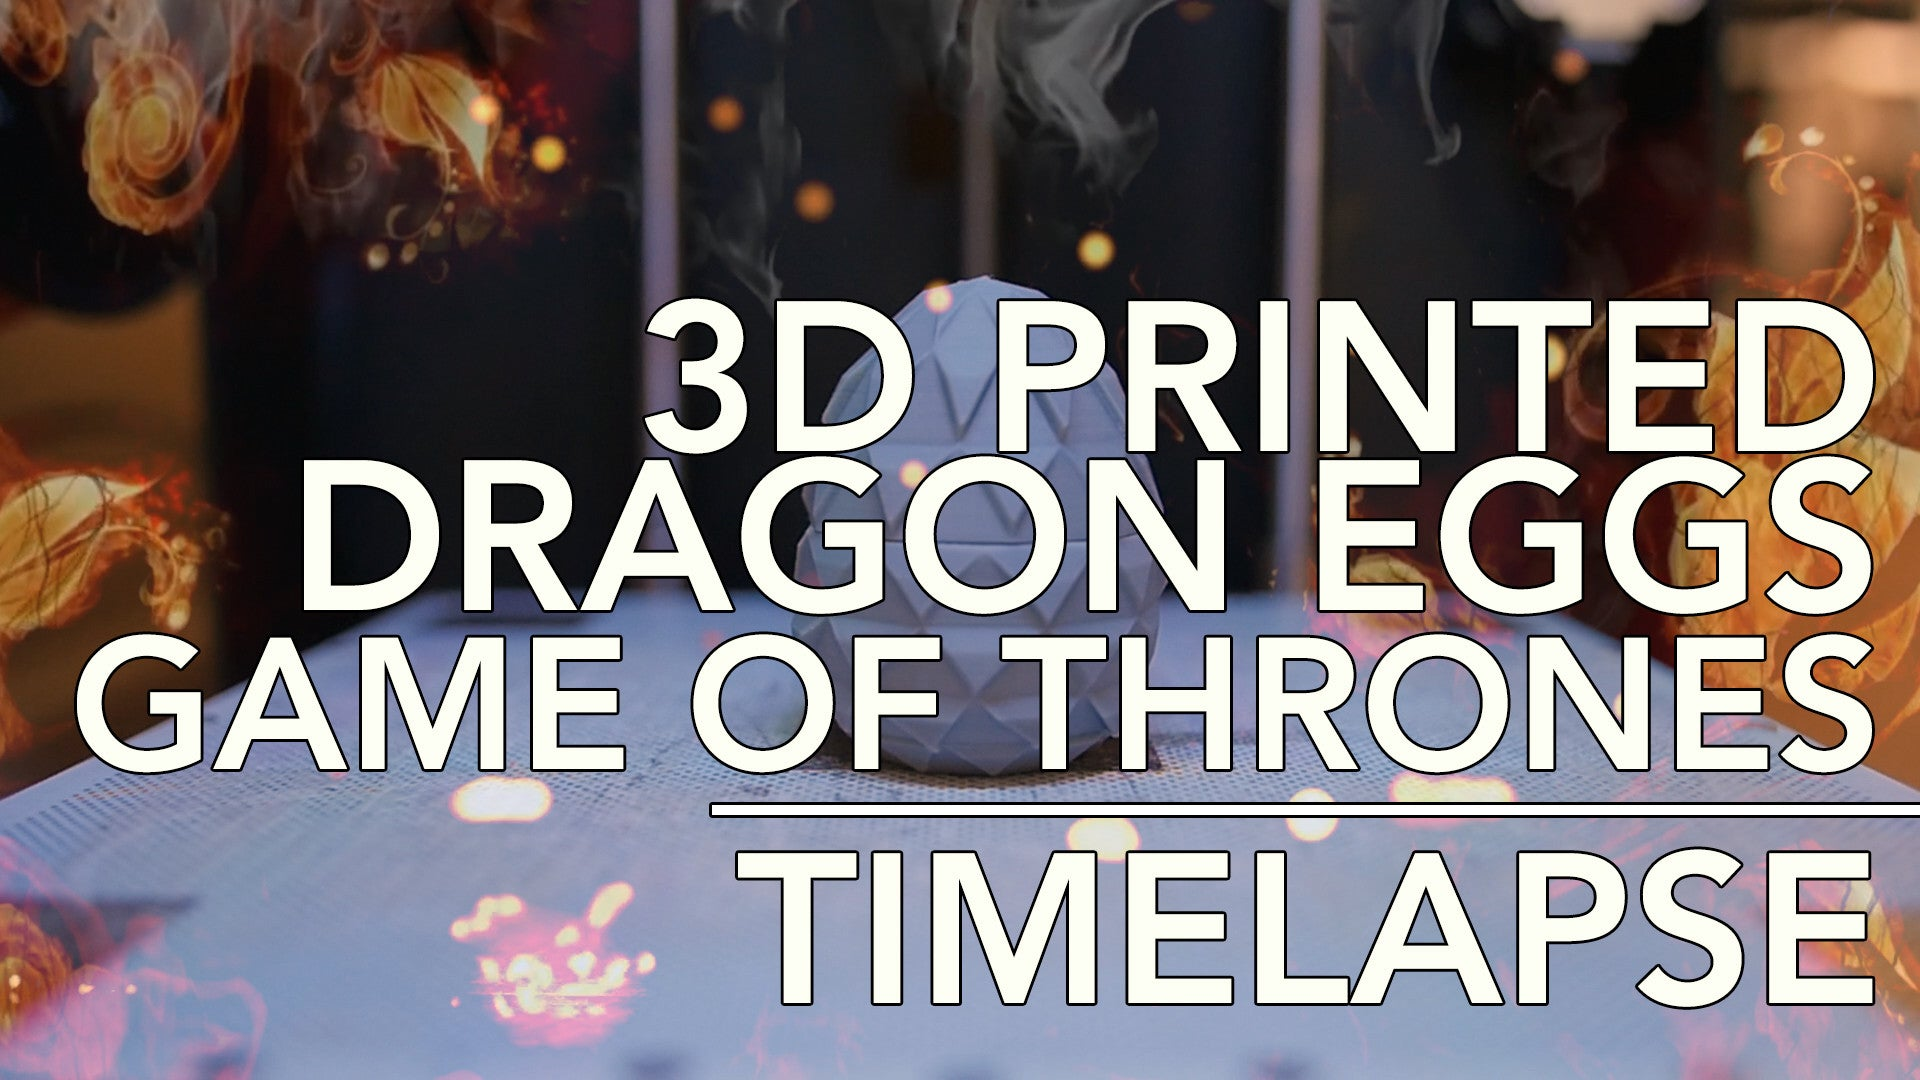 Want To See 3D Printed Dragon Eggs from Game Of Thrones?